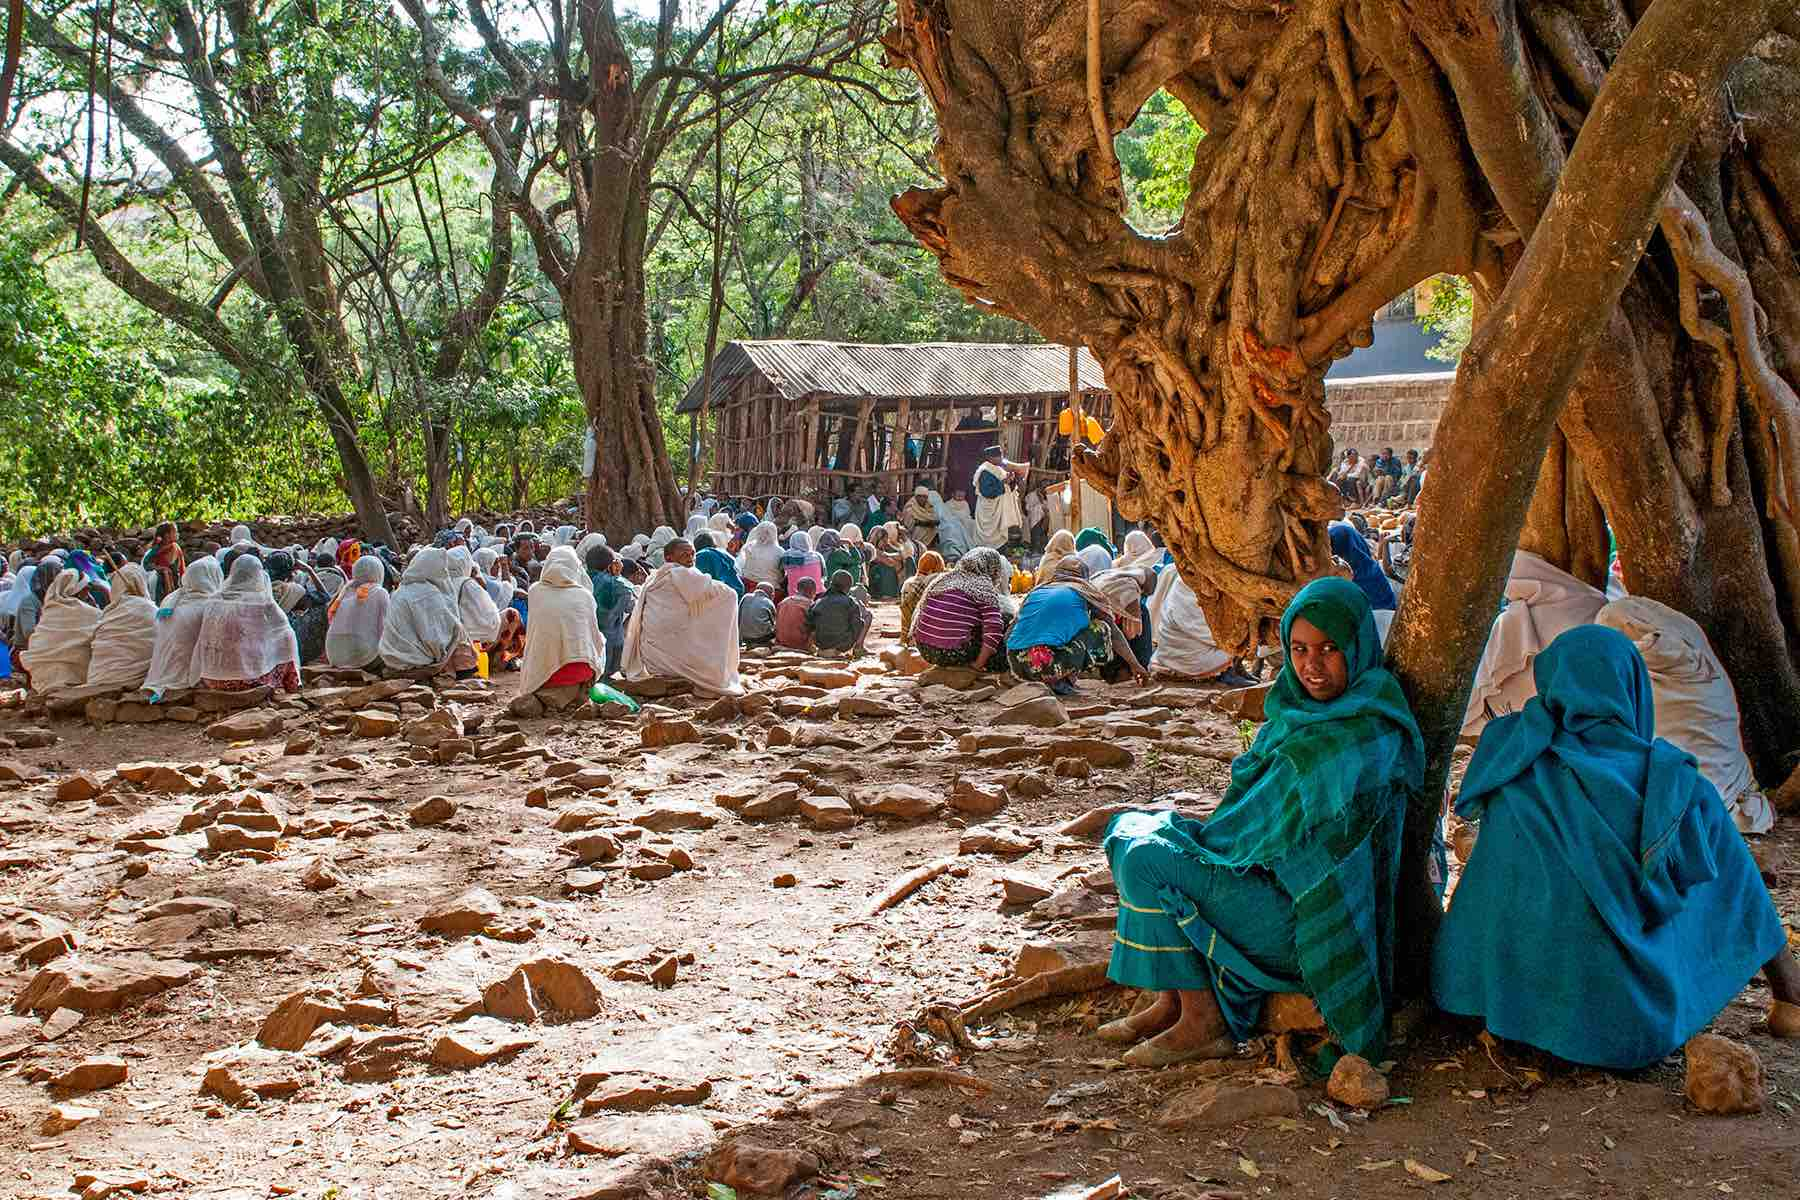 Ethiopia's forests surround churches